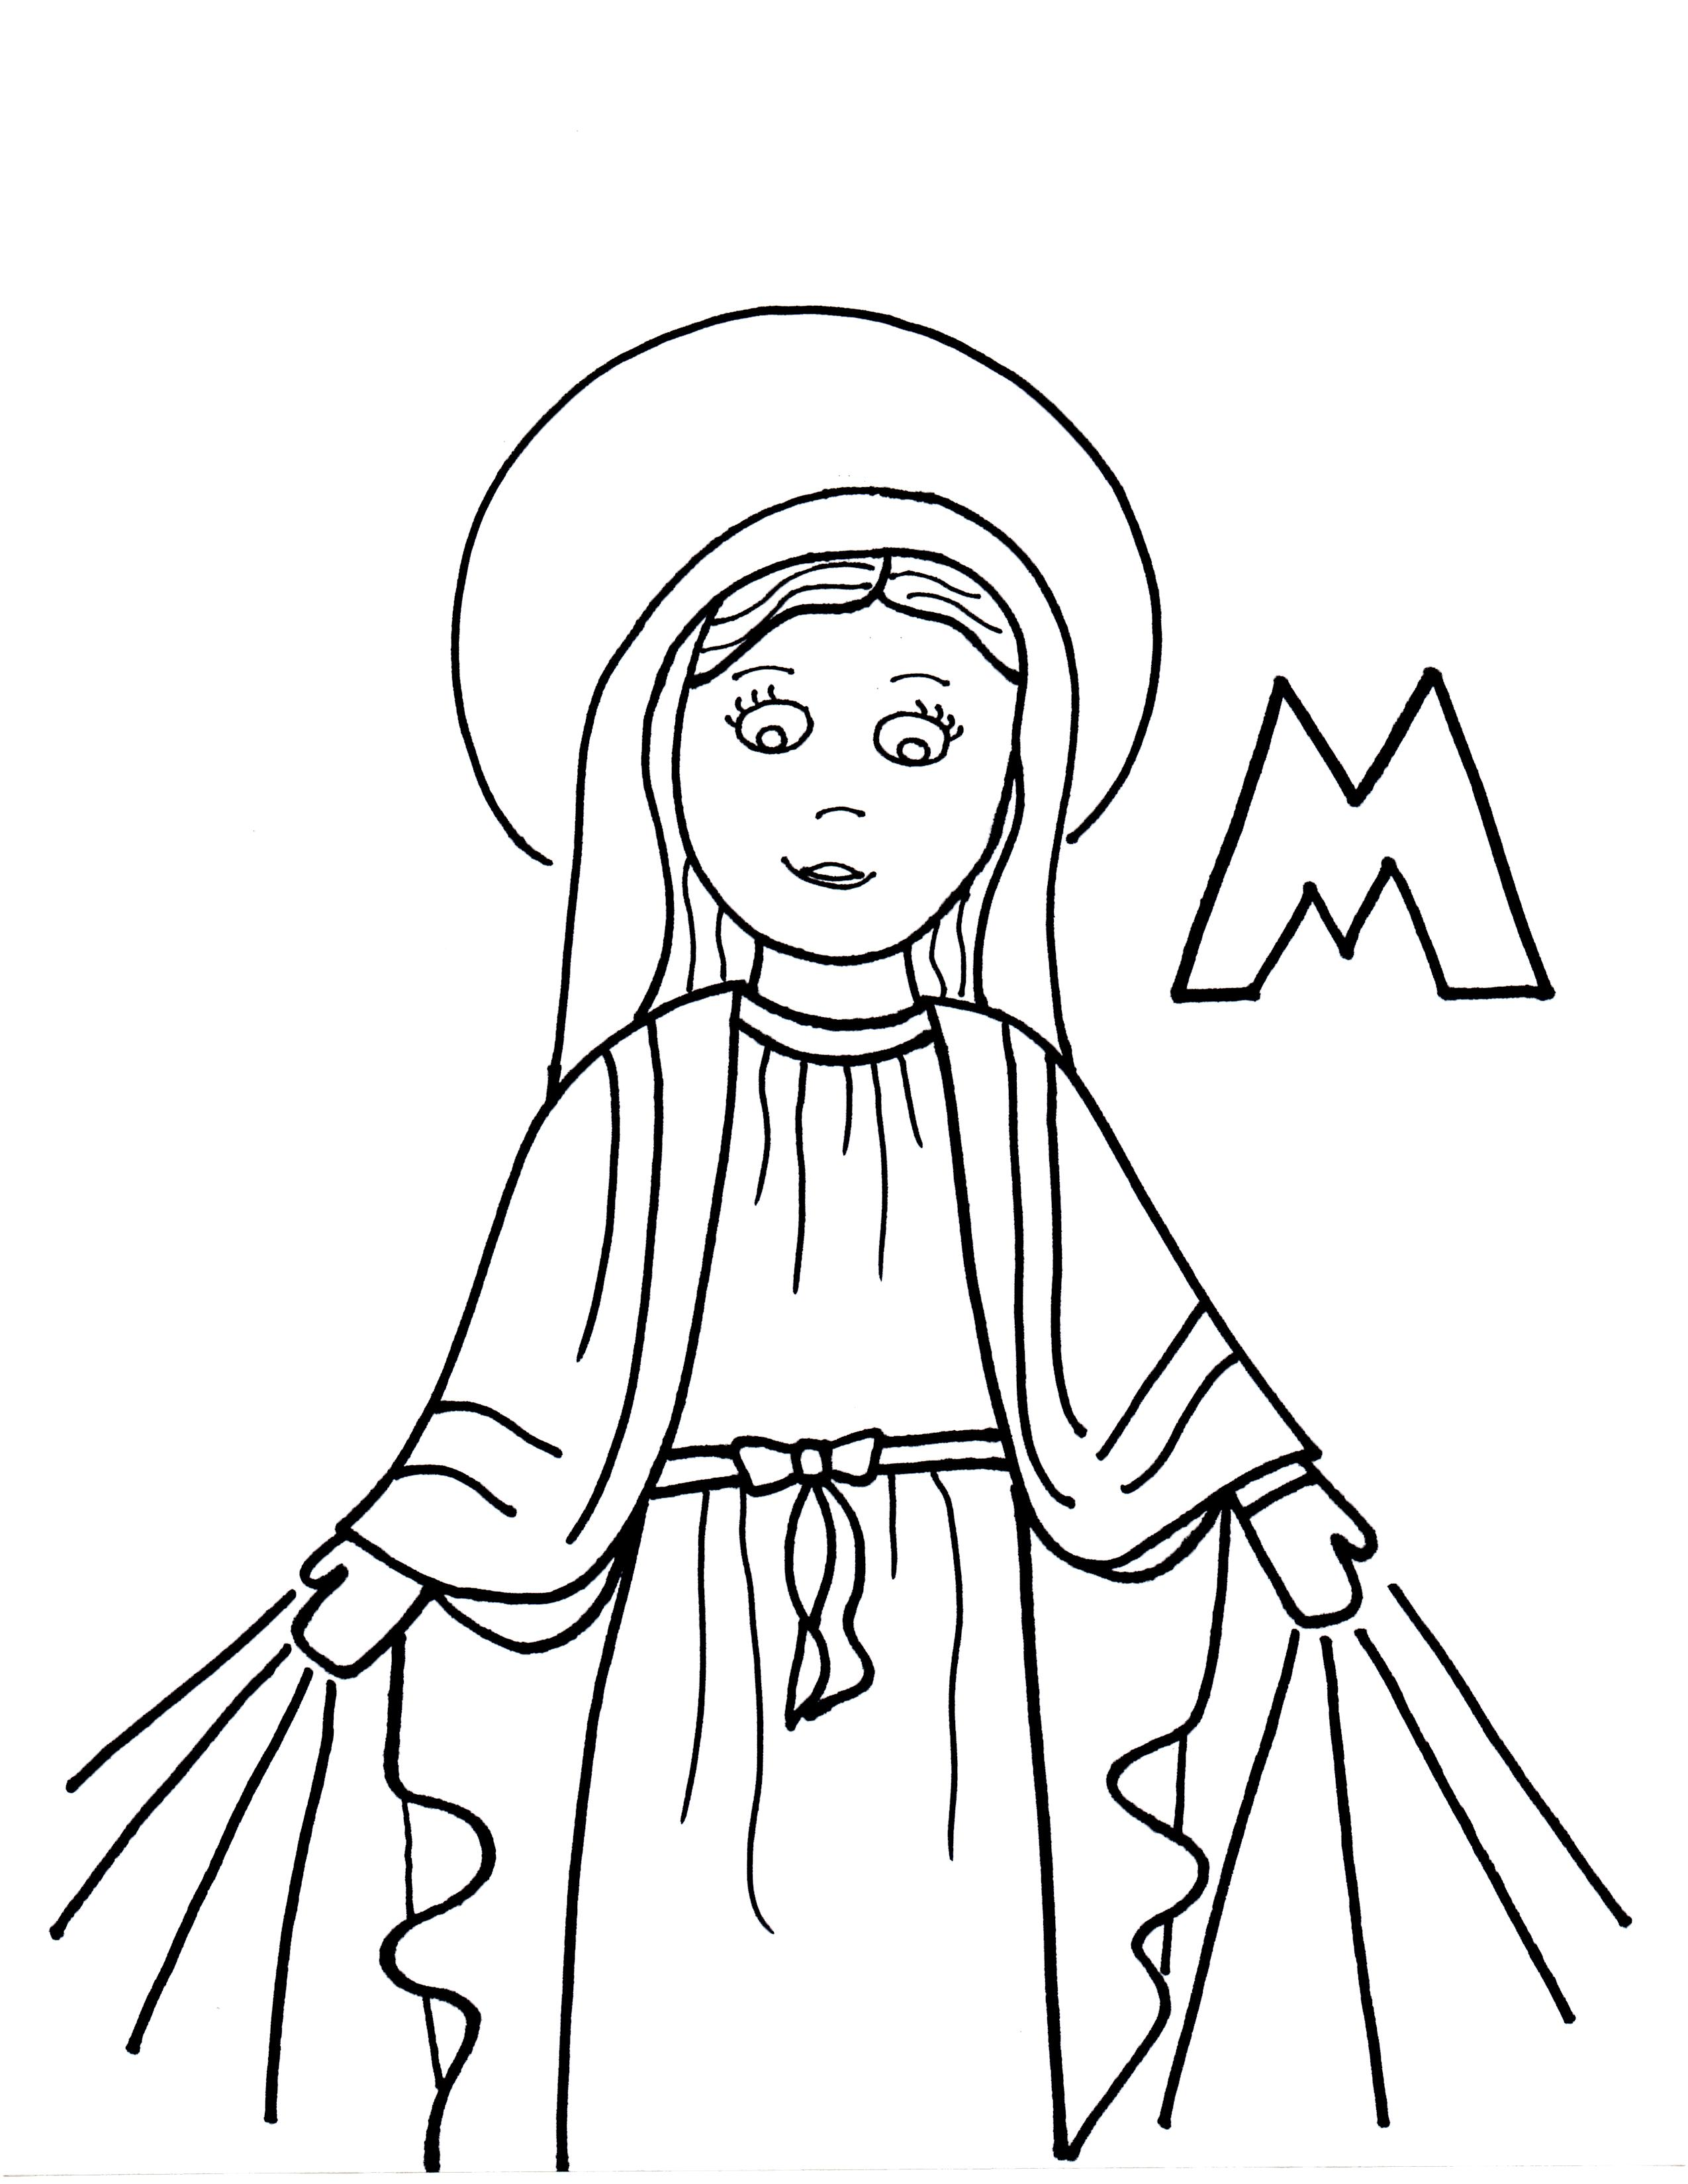 Saints Drawing at GetDrawings.com | Free for personal use Saints ...